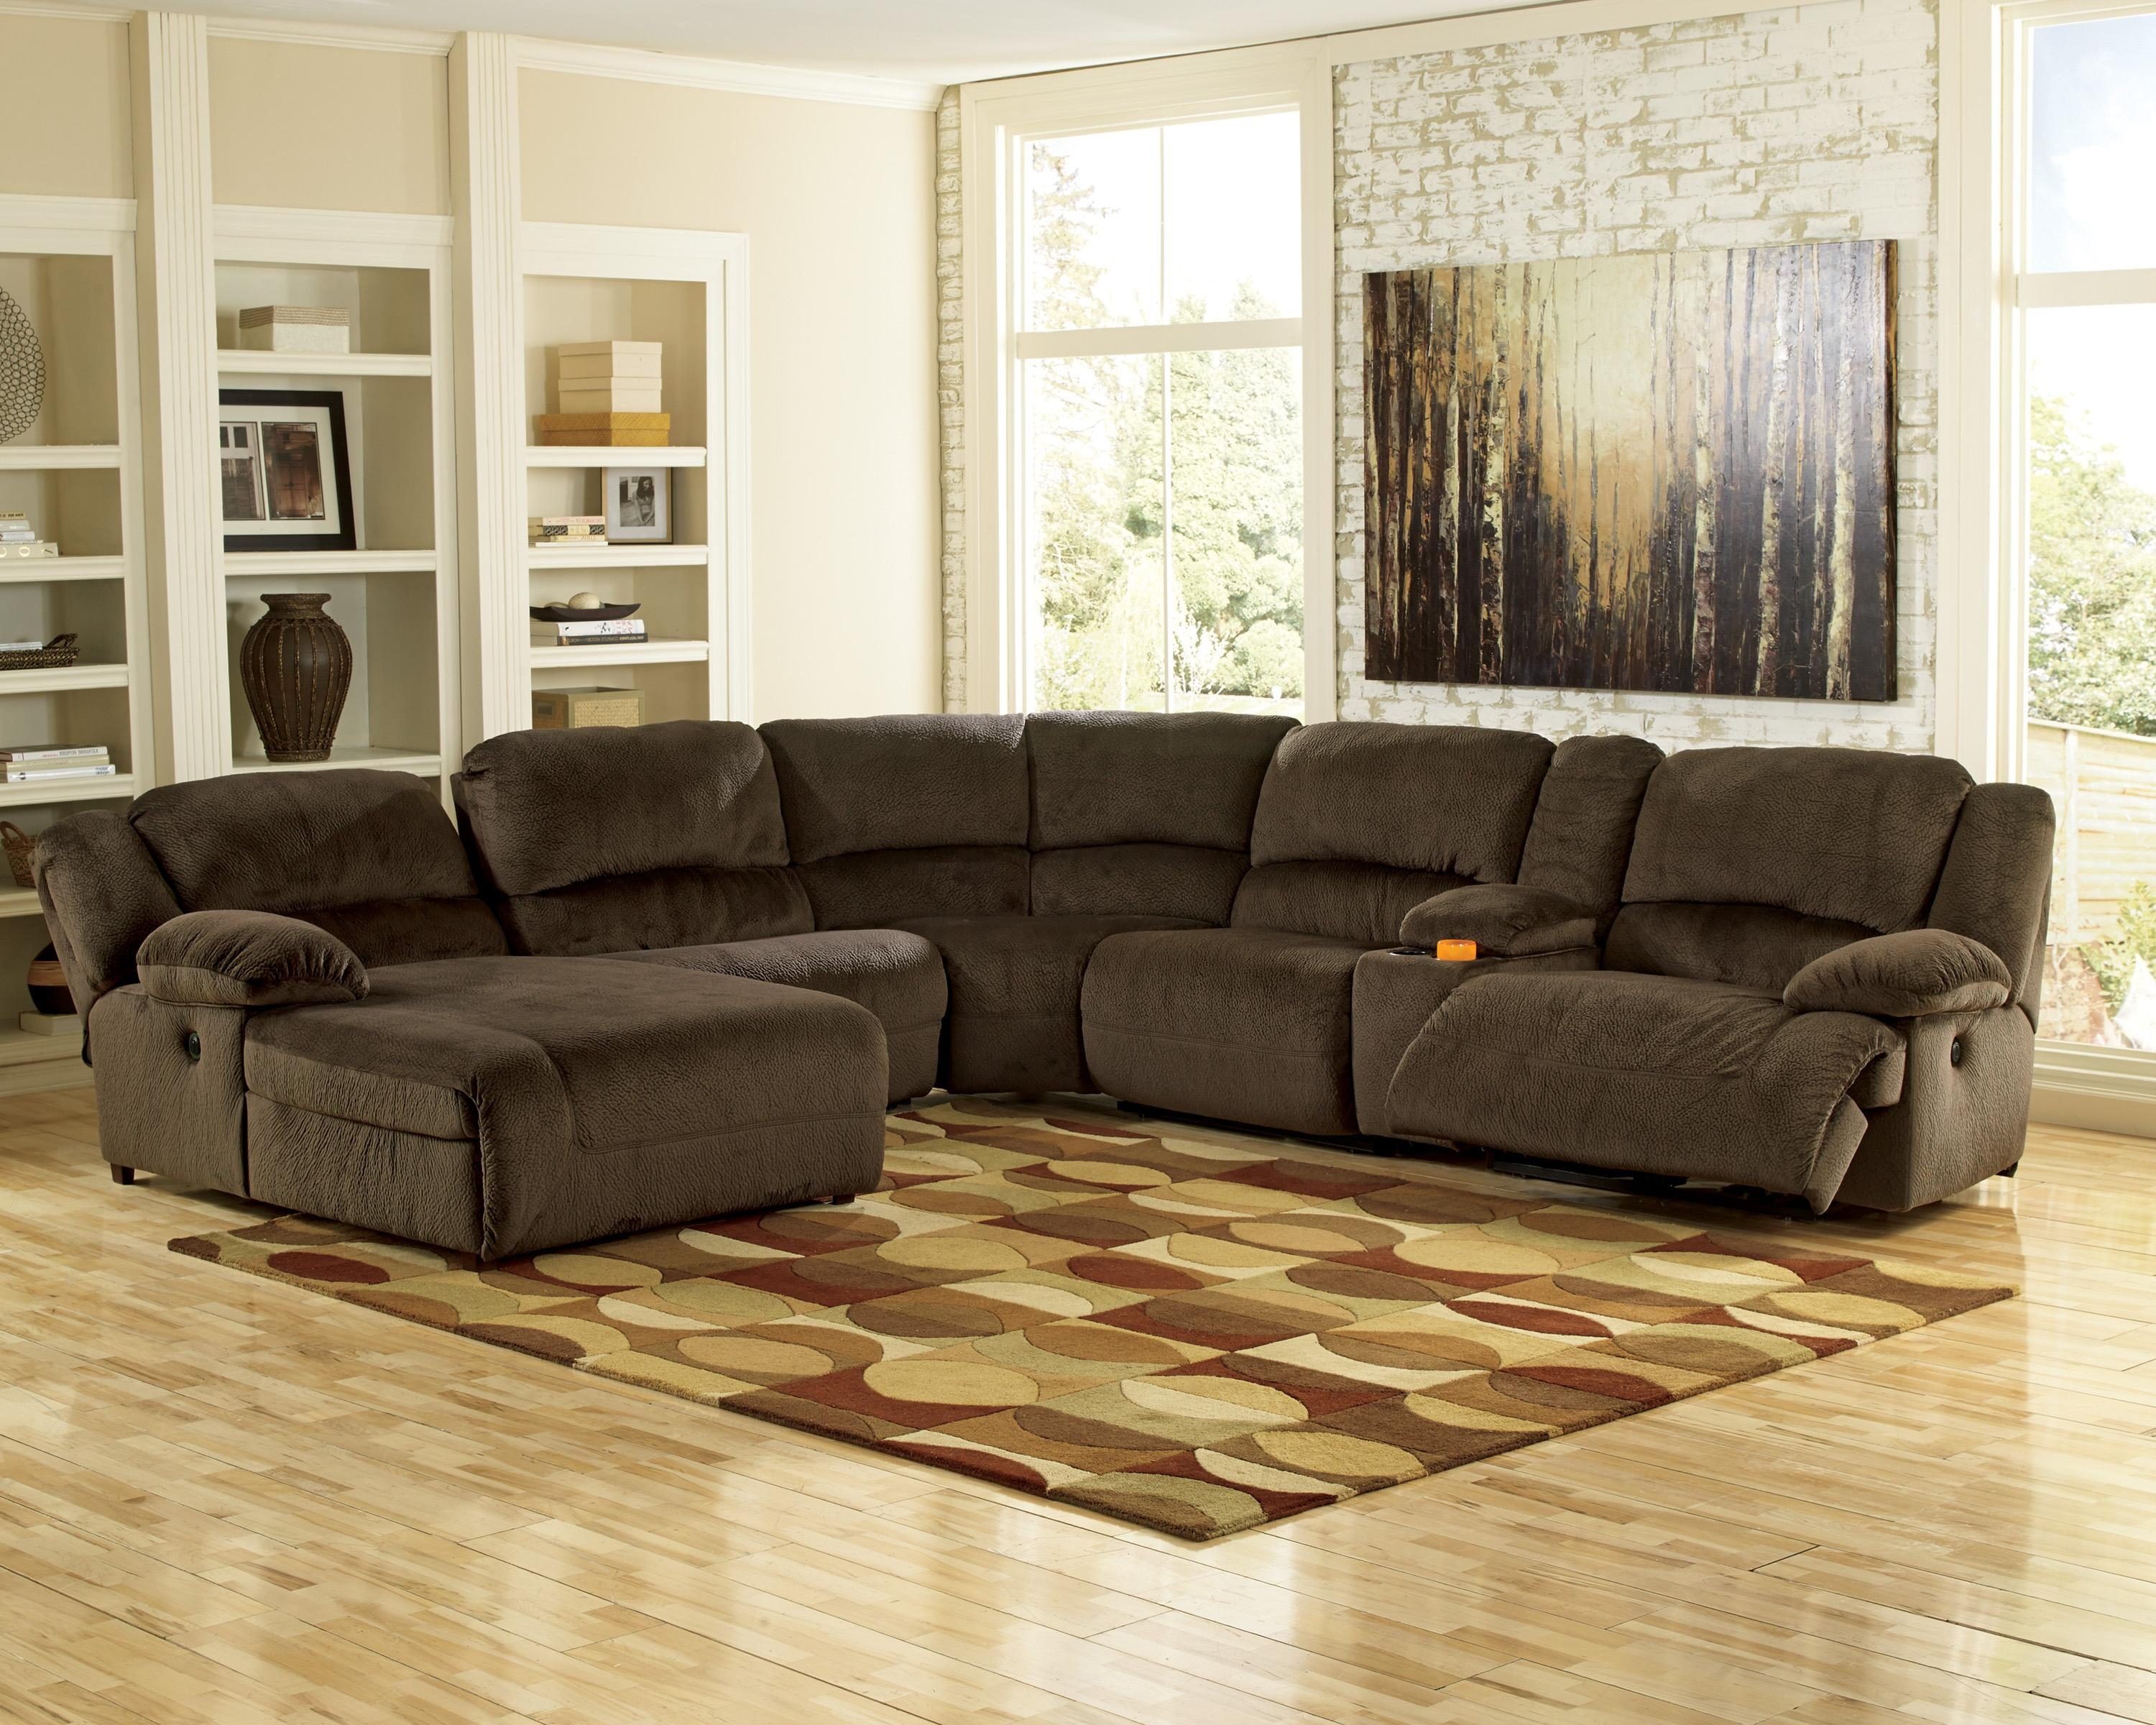 2 piece sectional sofa cheap urban home designing trends u2022 rh suzanstirling com